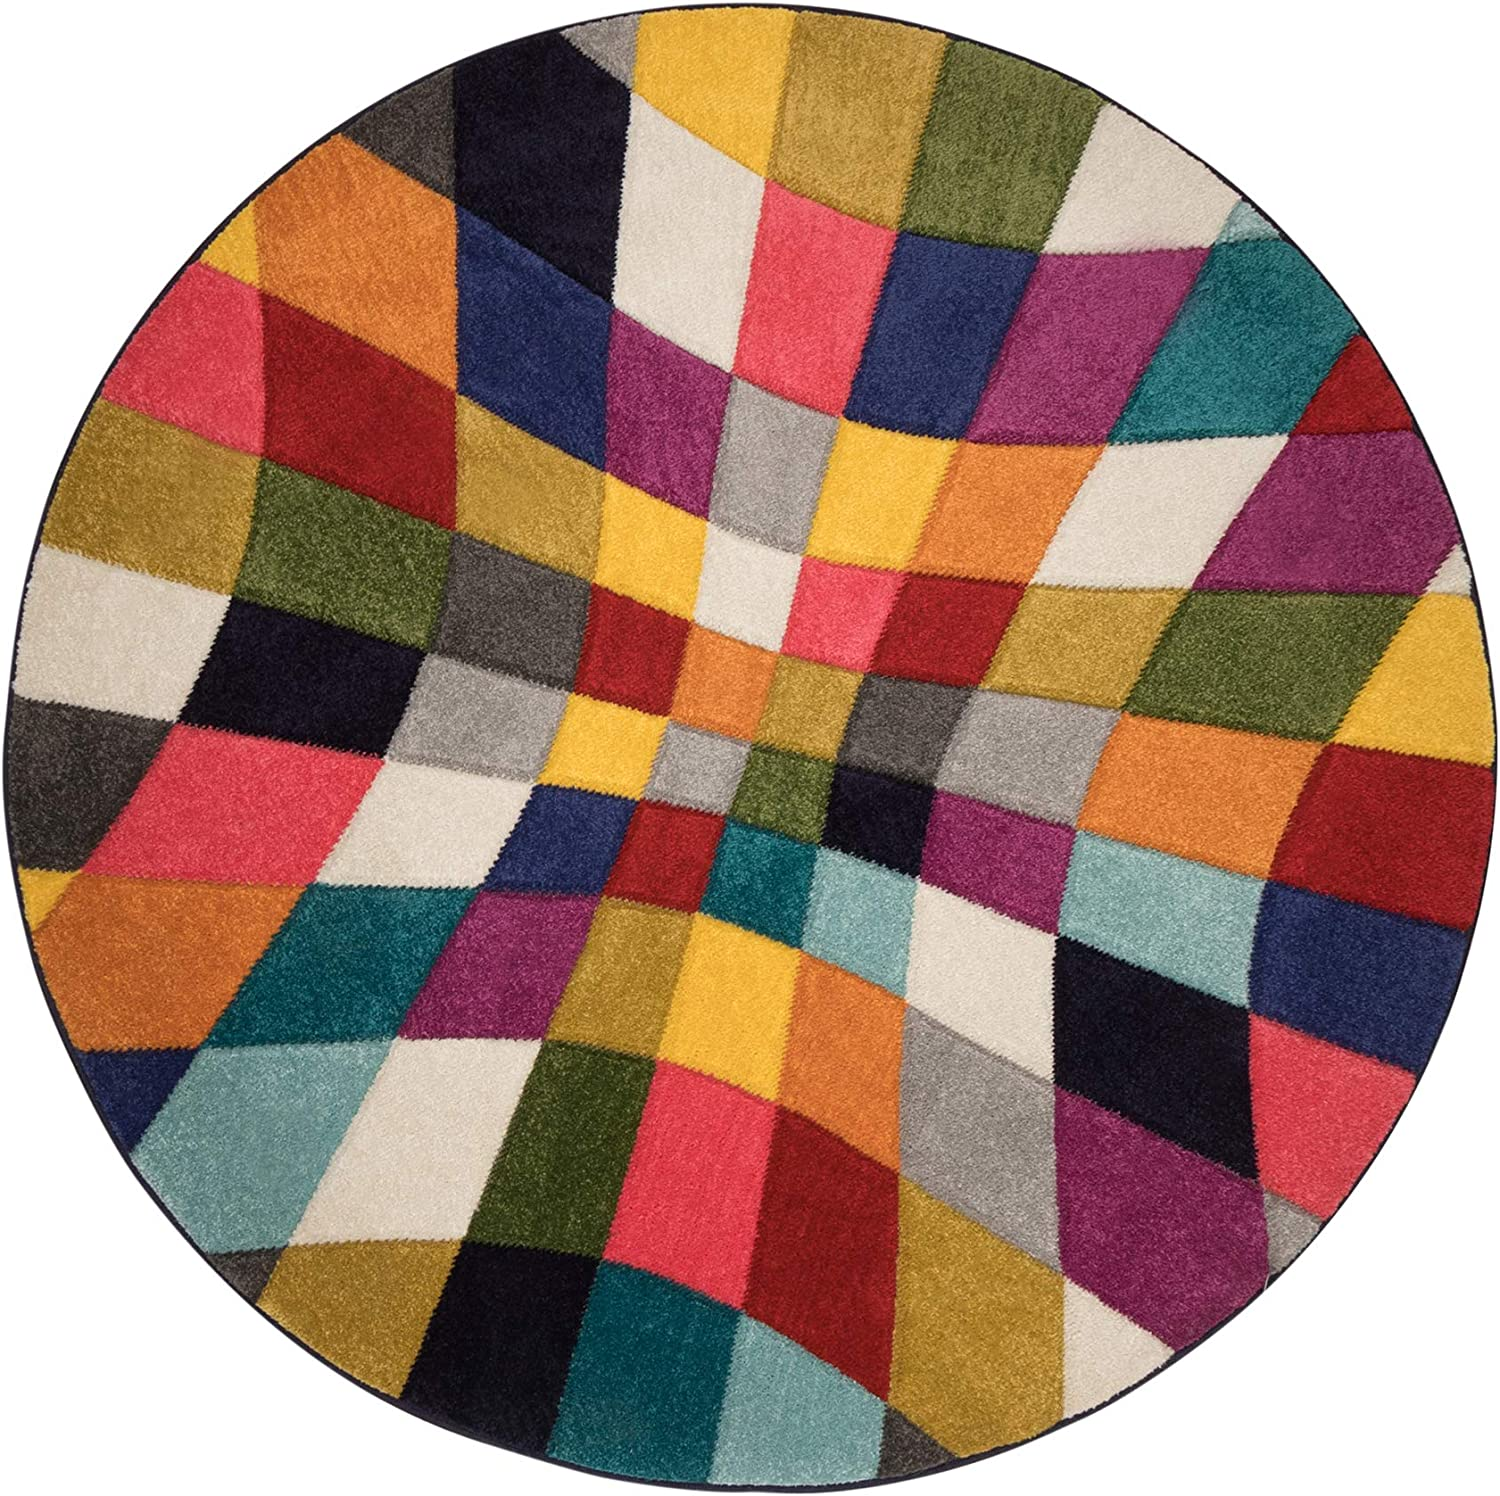 SPECTRUM ABSTRACT QUALITY HAND CARVED SOFT MULTI RUG /& RUNNER ROUND CARPET